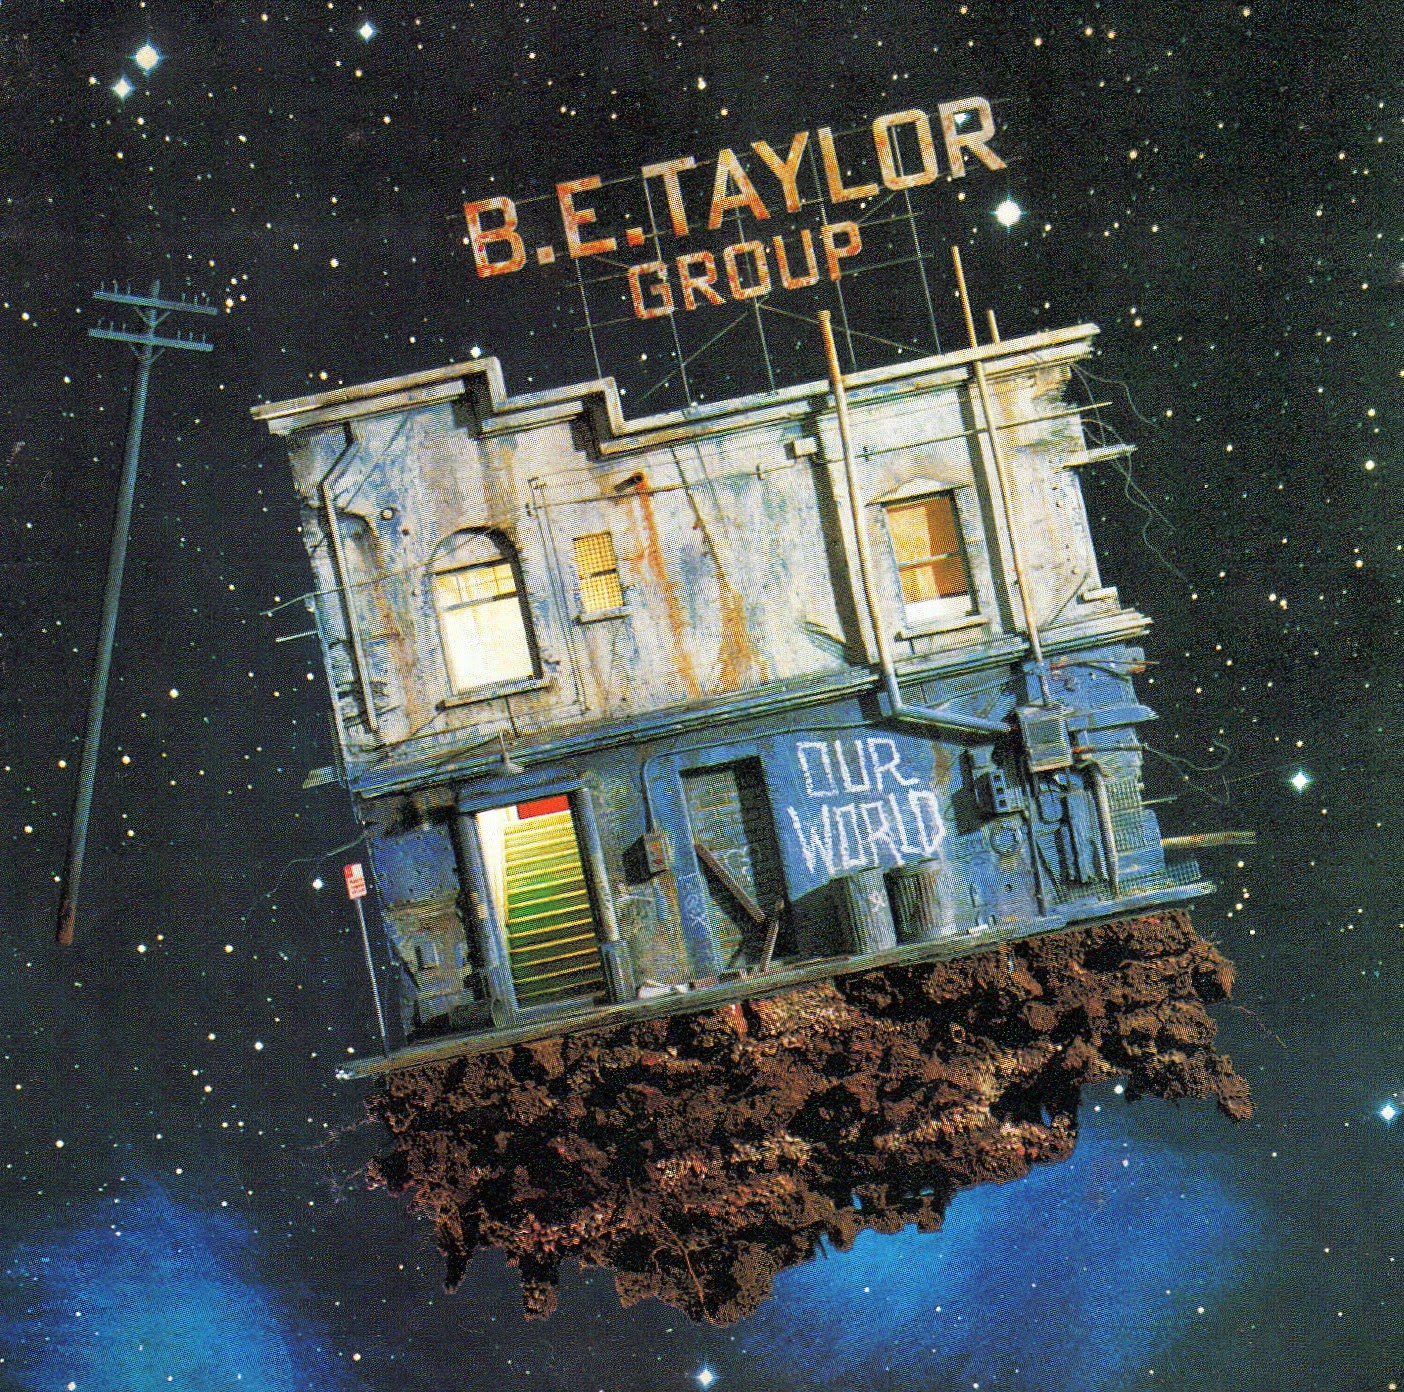 B.E. Taylor Group Our World 1986 aor melodic rock music blogspot albums bands